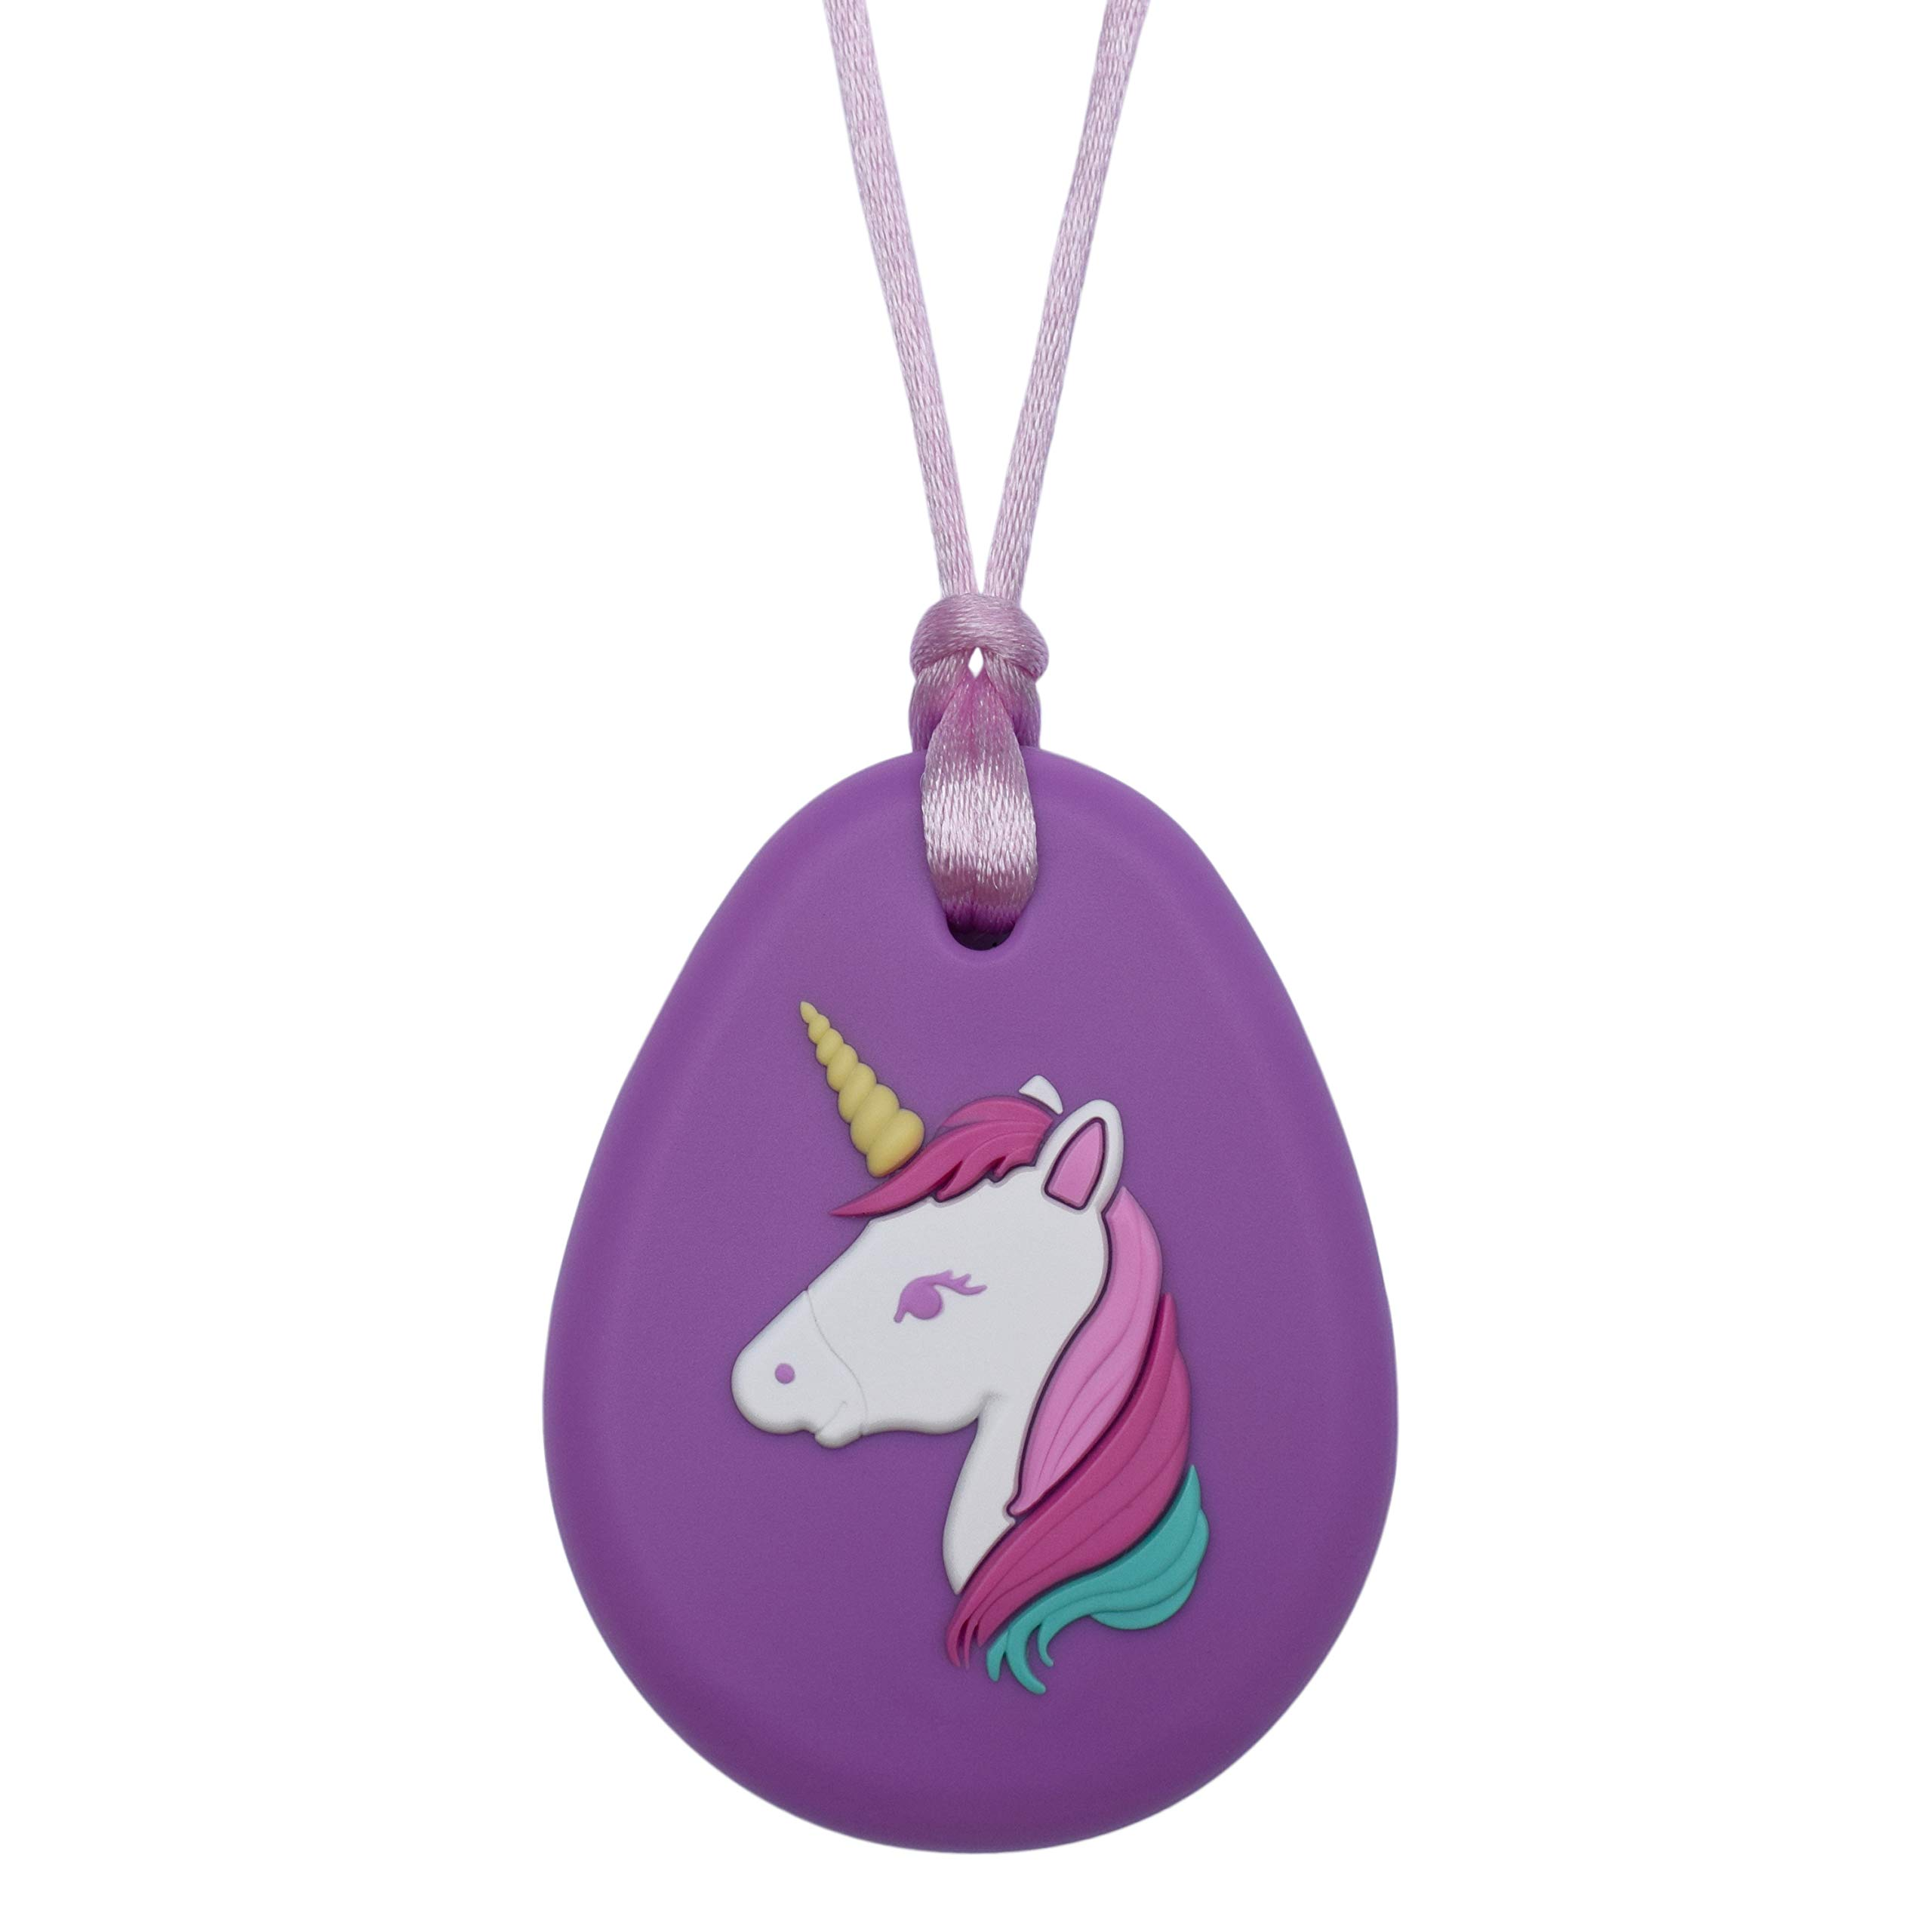 Munchables Unicorn Pendant - Sensory Chew Necklace for Girls (Purple)